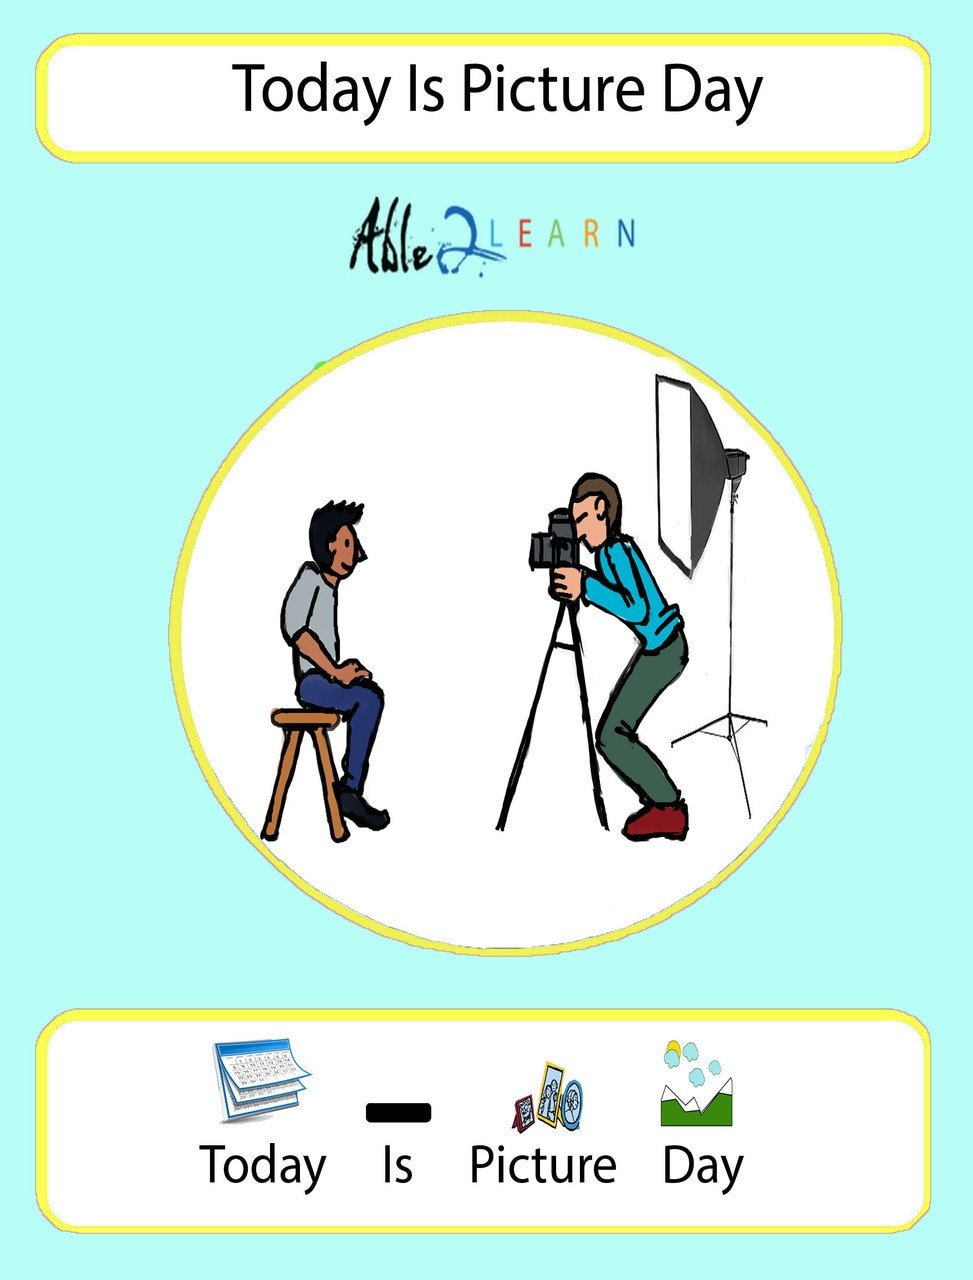 able2learn free social story social story back to school picture day social story picture day free aba resoures special education resources free teaching materials free printable worksheets autism school 1